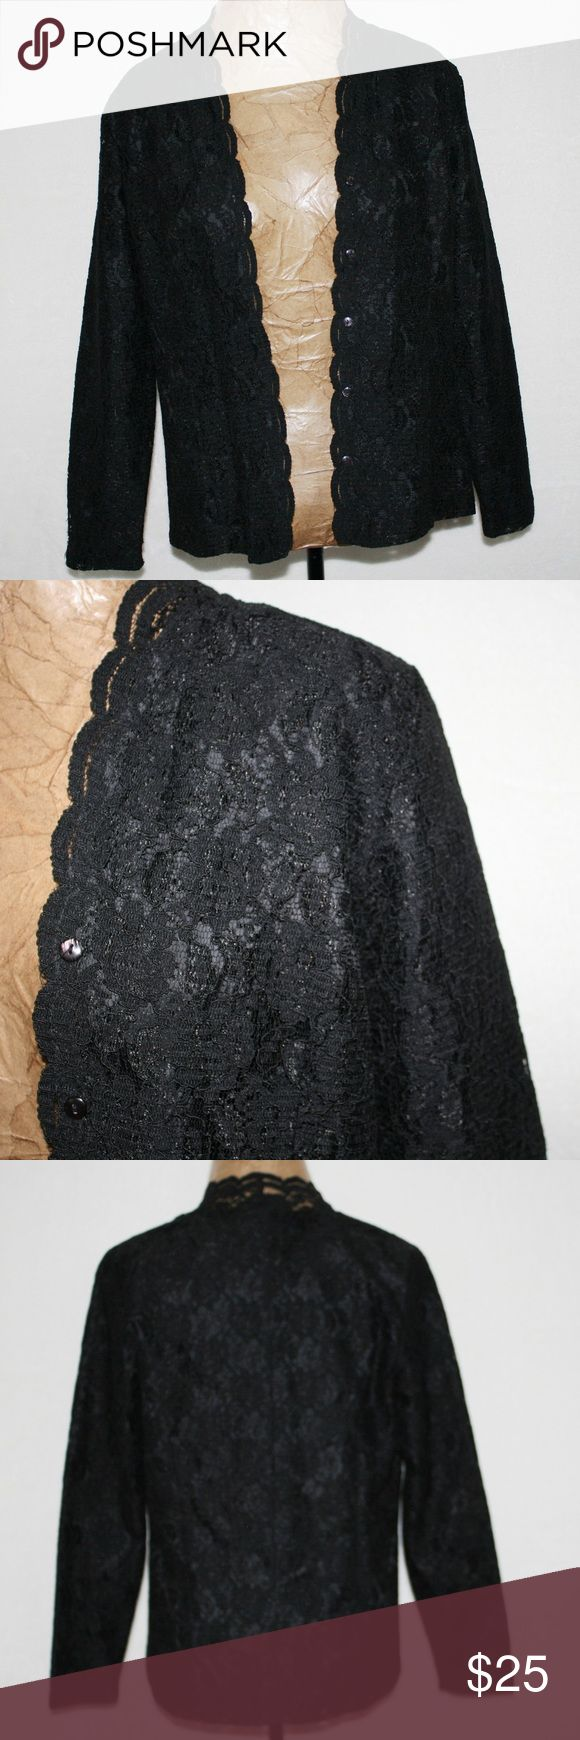 """Karen Scott Black Lace Jacket Blazer Striking black lace jacket, Has a very tailored look to it. Is a """"substantial"""" lace look, not a soft lace. Looks like it means business type of lace, if you know what I mean. Scalloped edge around all the jacket and the sleeves. Slim shoulder pads. Bust is 38 inches and sleeves are 24 inches long. 65% Nylon and 35% Rayon. (0930) Karen Scott Jackets & Coats Blazers"""